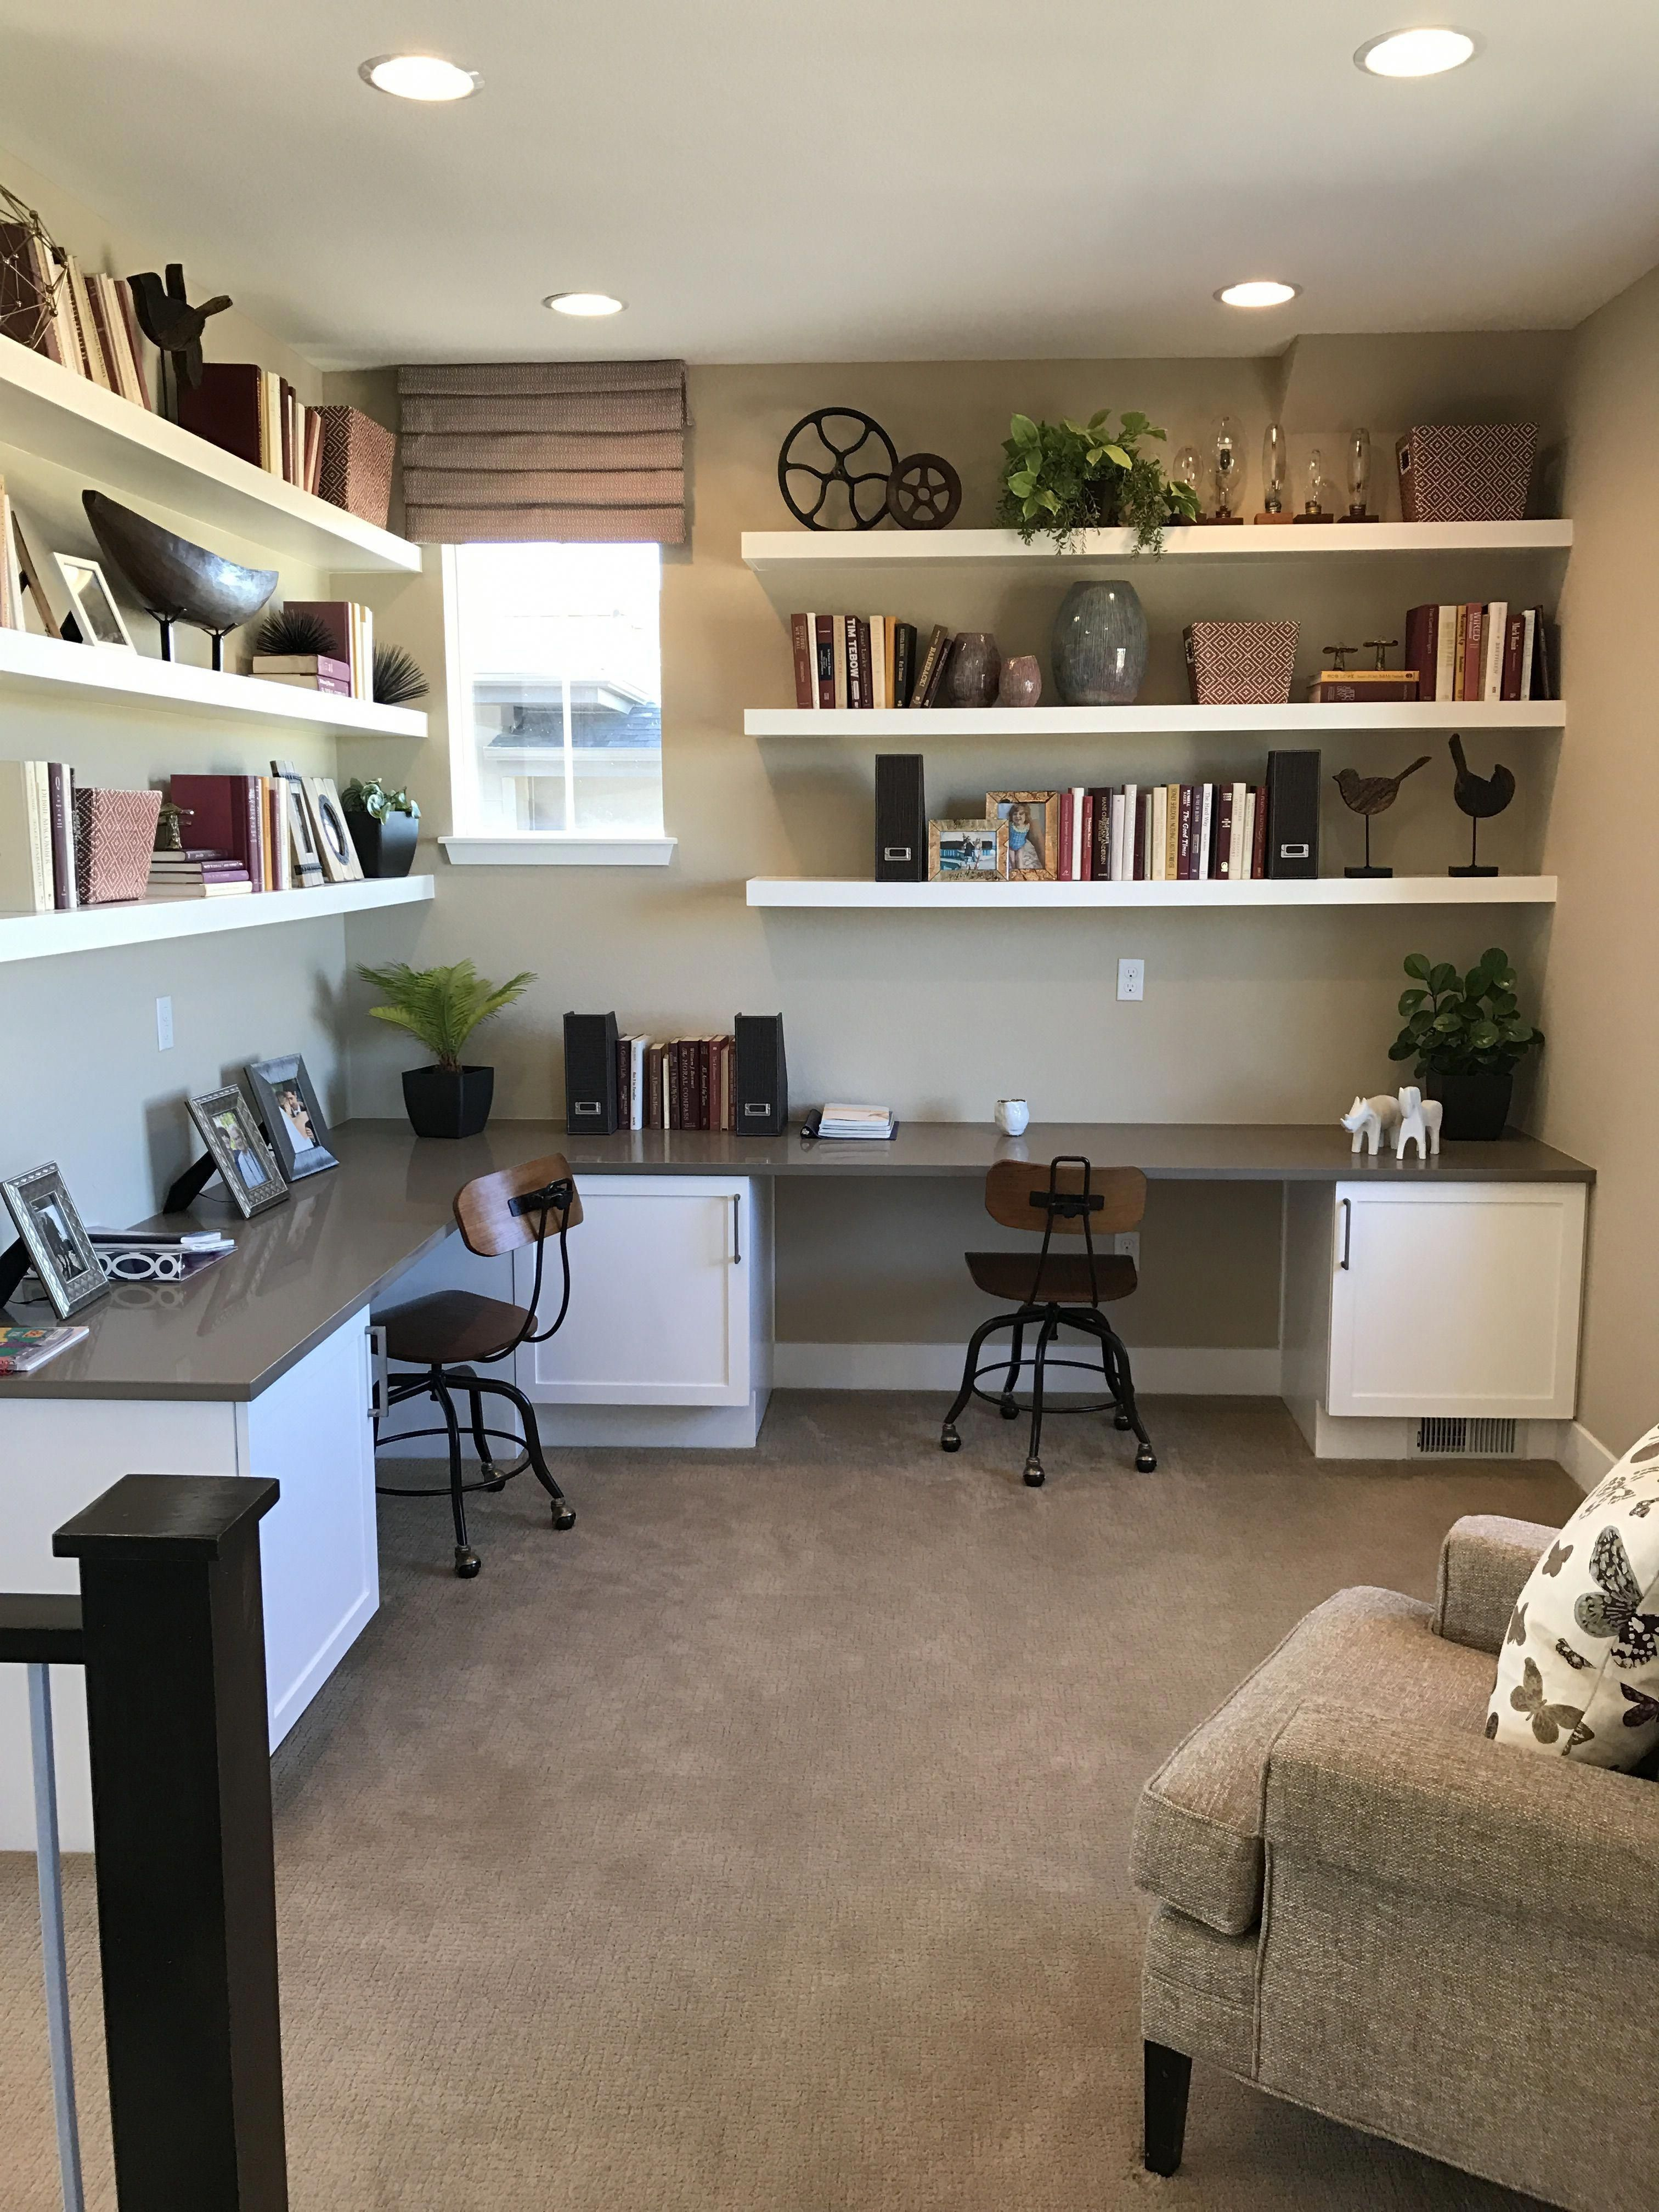 20 Inspirational Home Office Decor Ideas For 2019: Custom Home Office Ideas 20190224